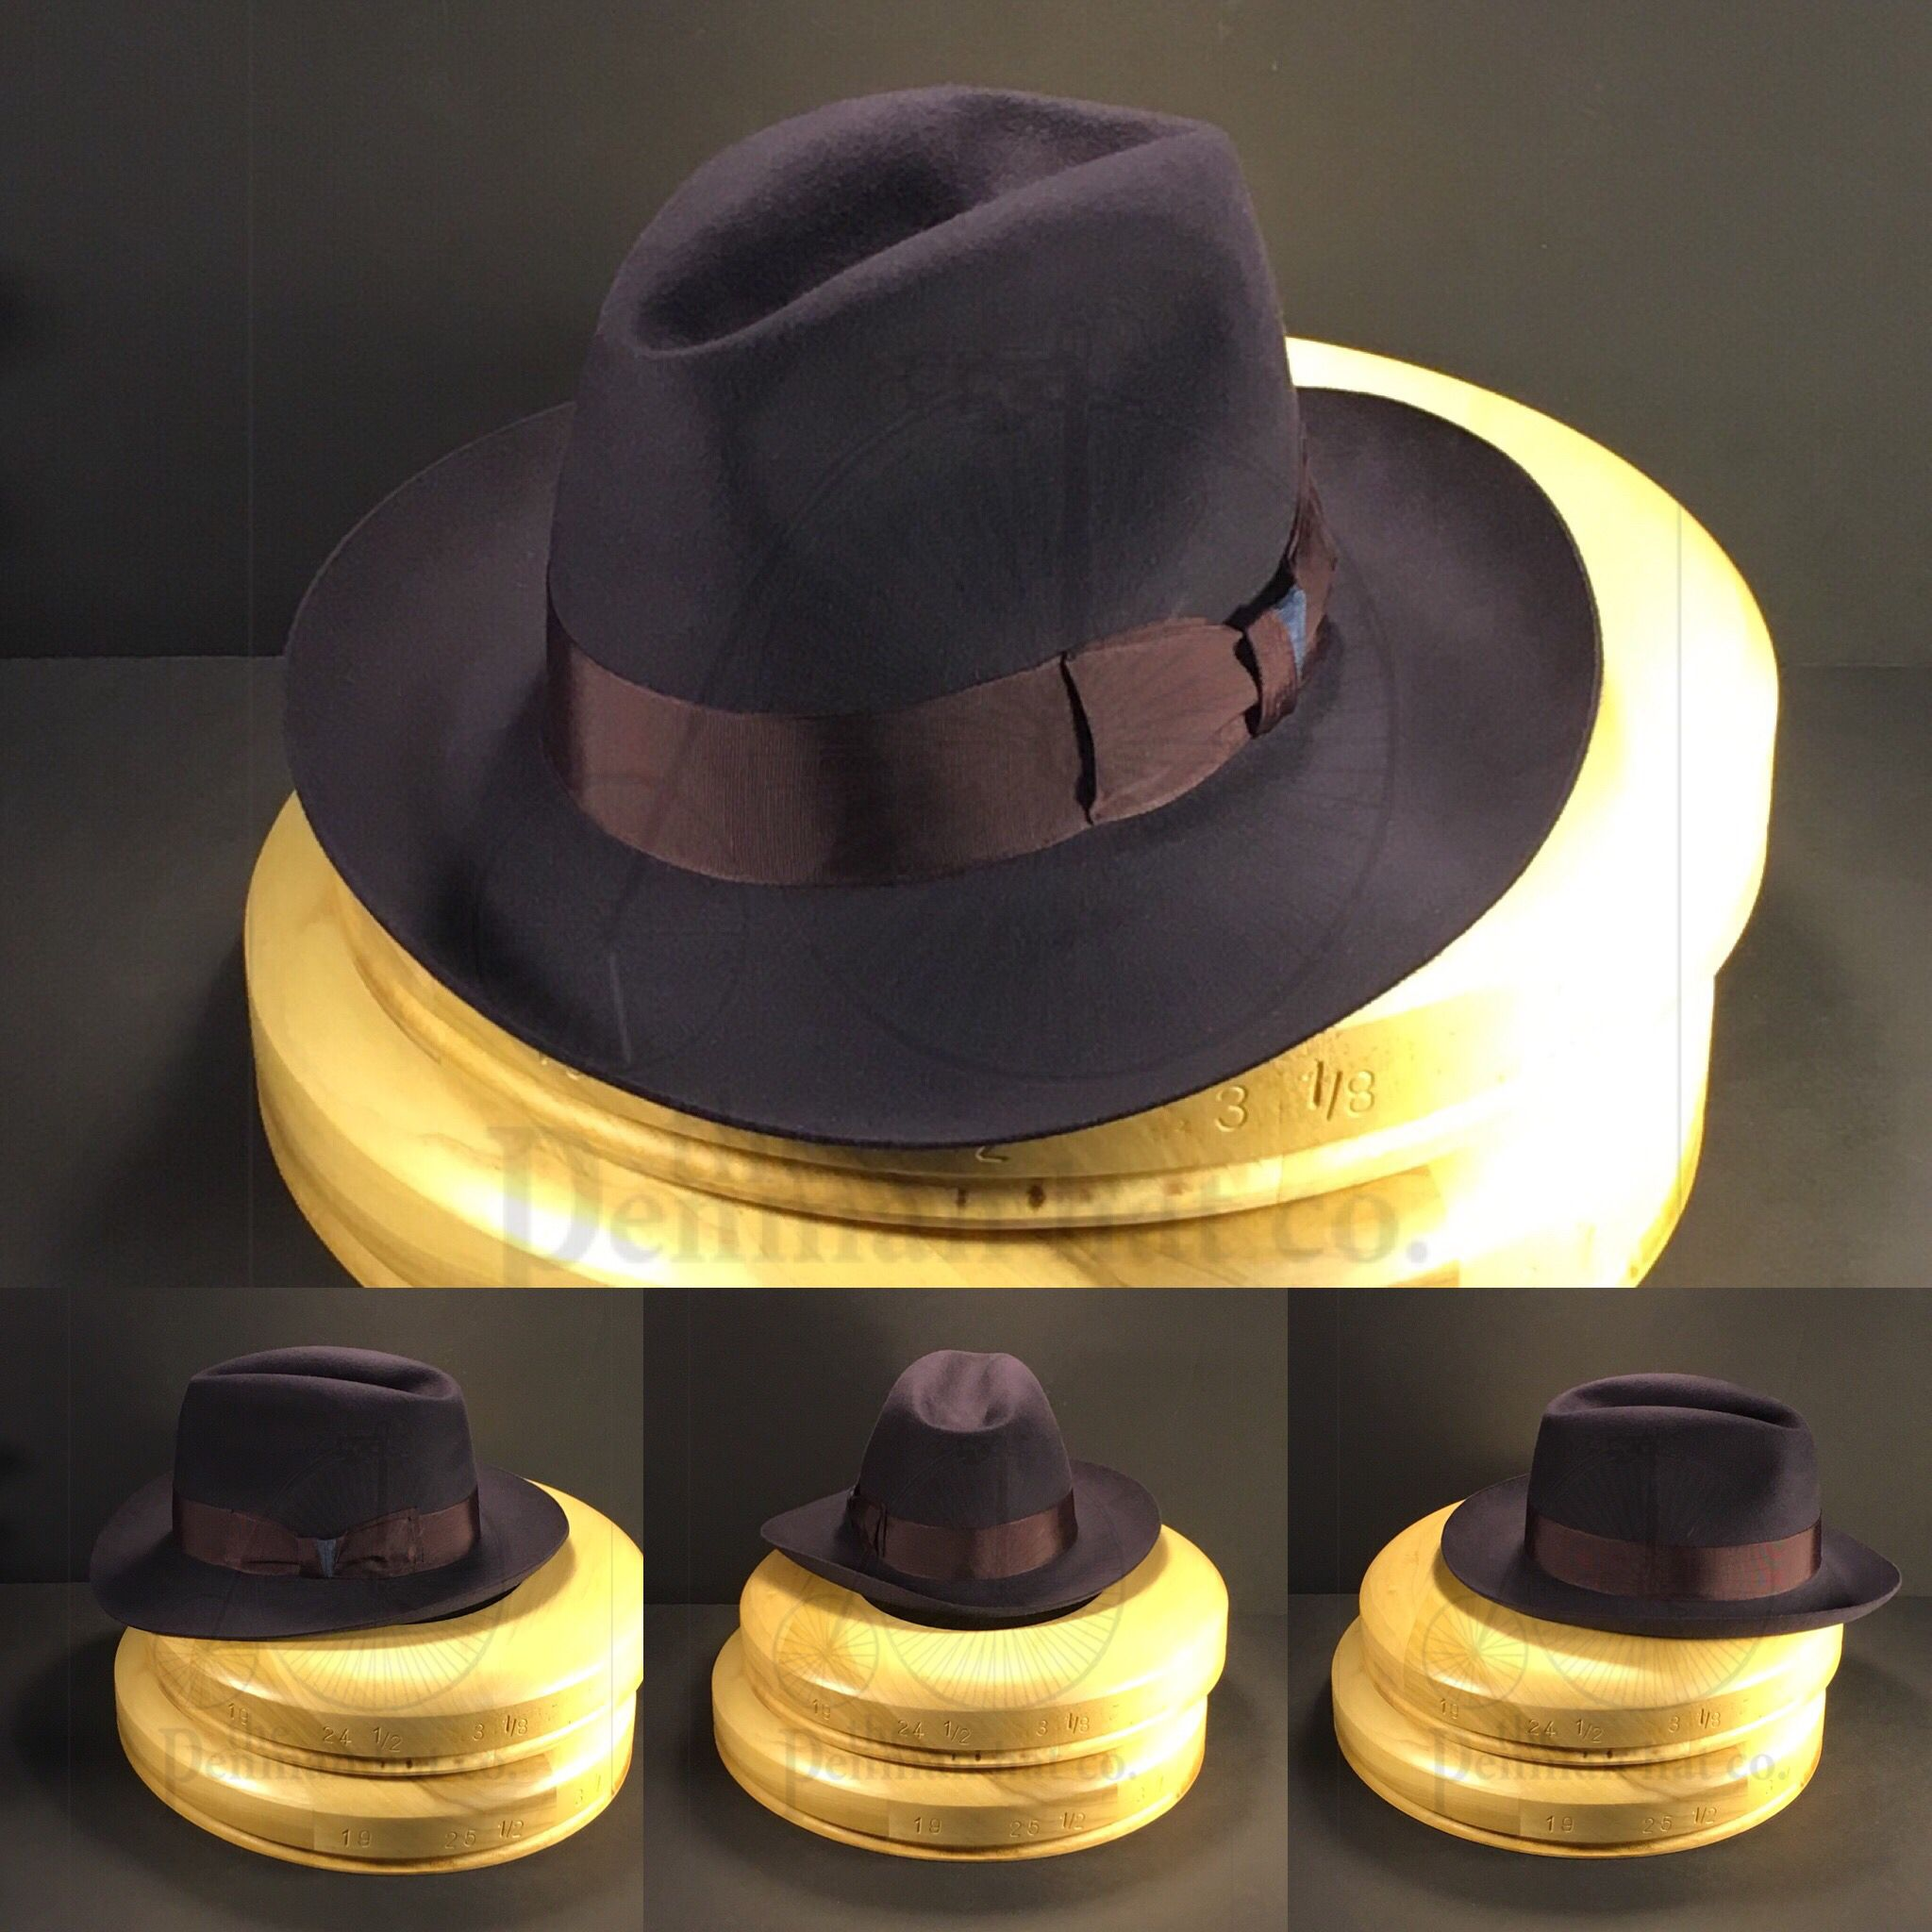 b81a9b4db Just finished this eggplant colored bespoke fedora with a vintage ...